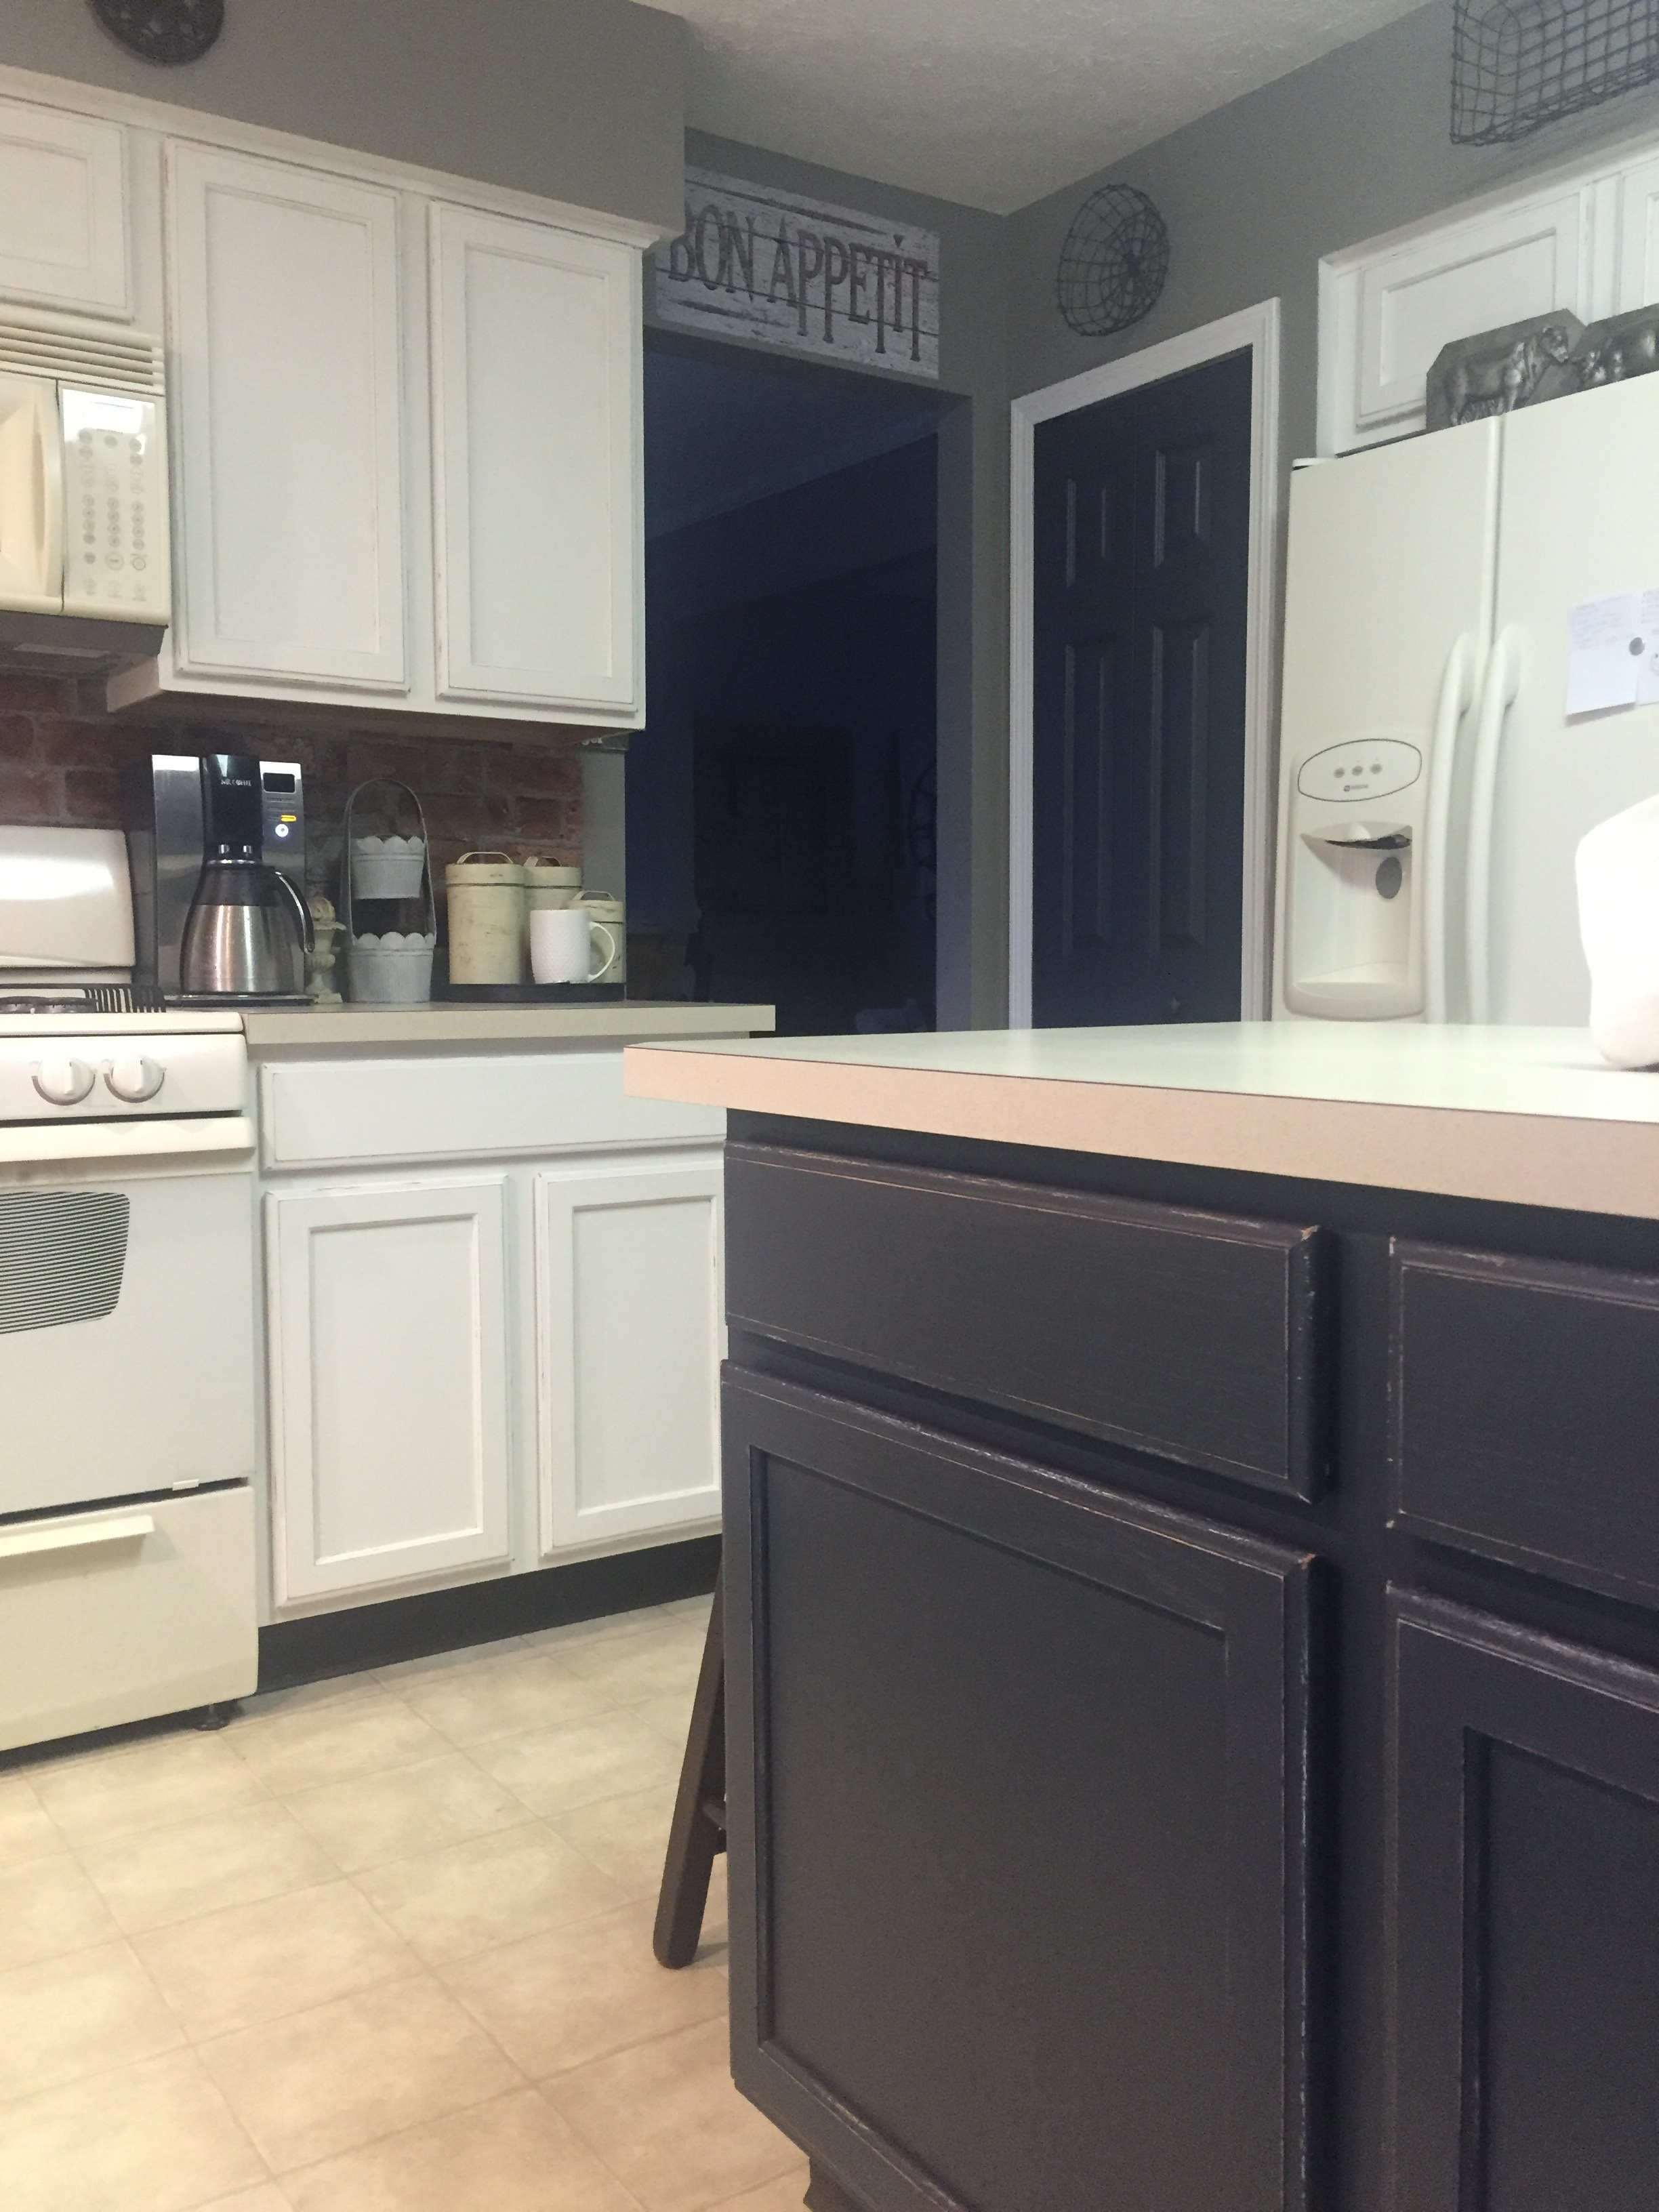 Images Of Painted Kitchen Cabinets Painted Kitchen Cabinets Adding Farmhouse Character The Other